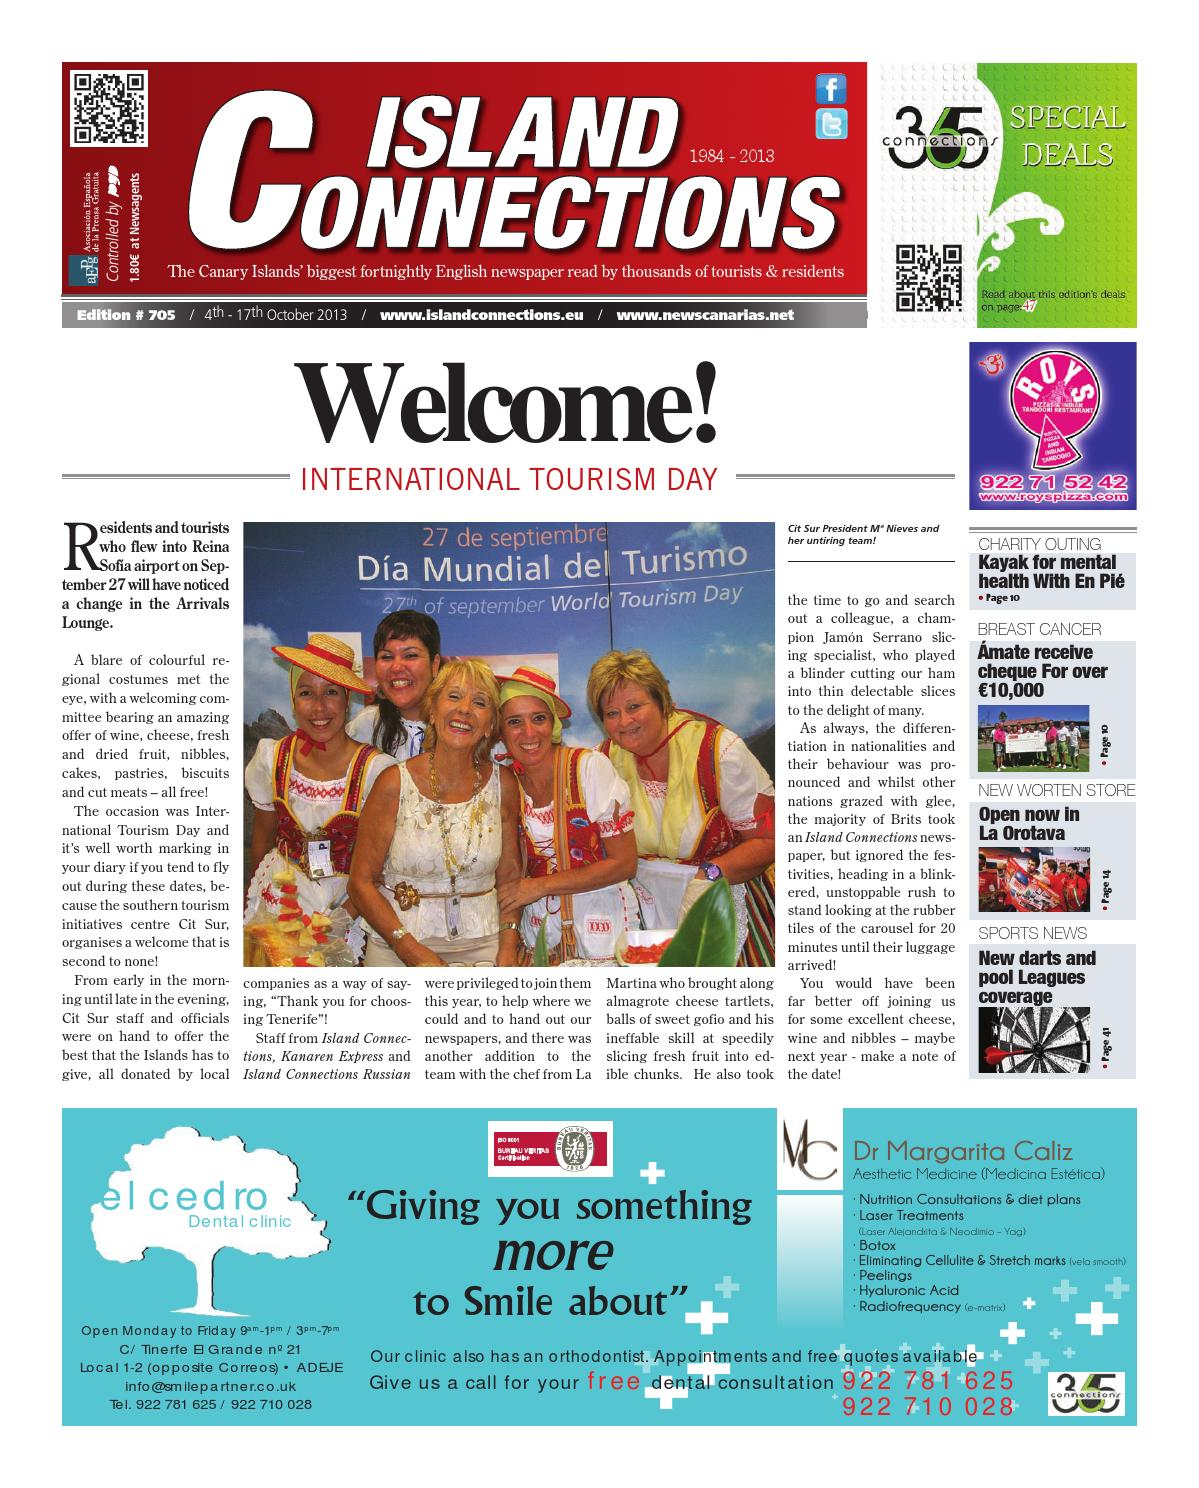 Island connections 10 by Island Connections Media Group   issuu